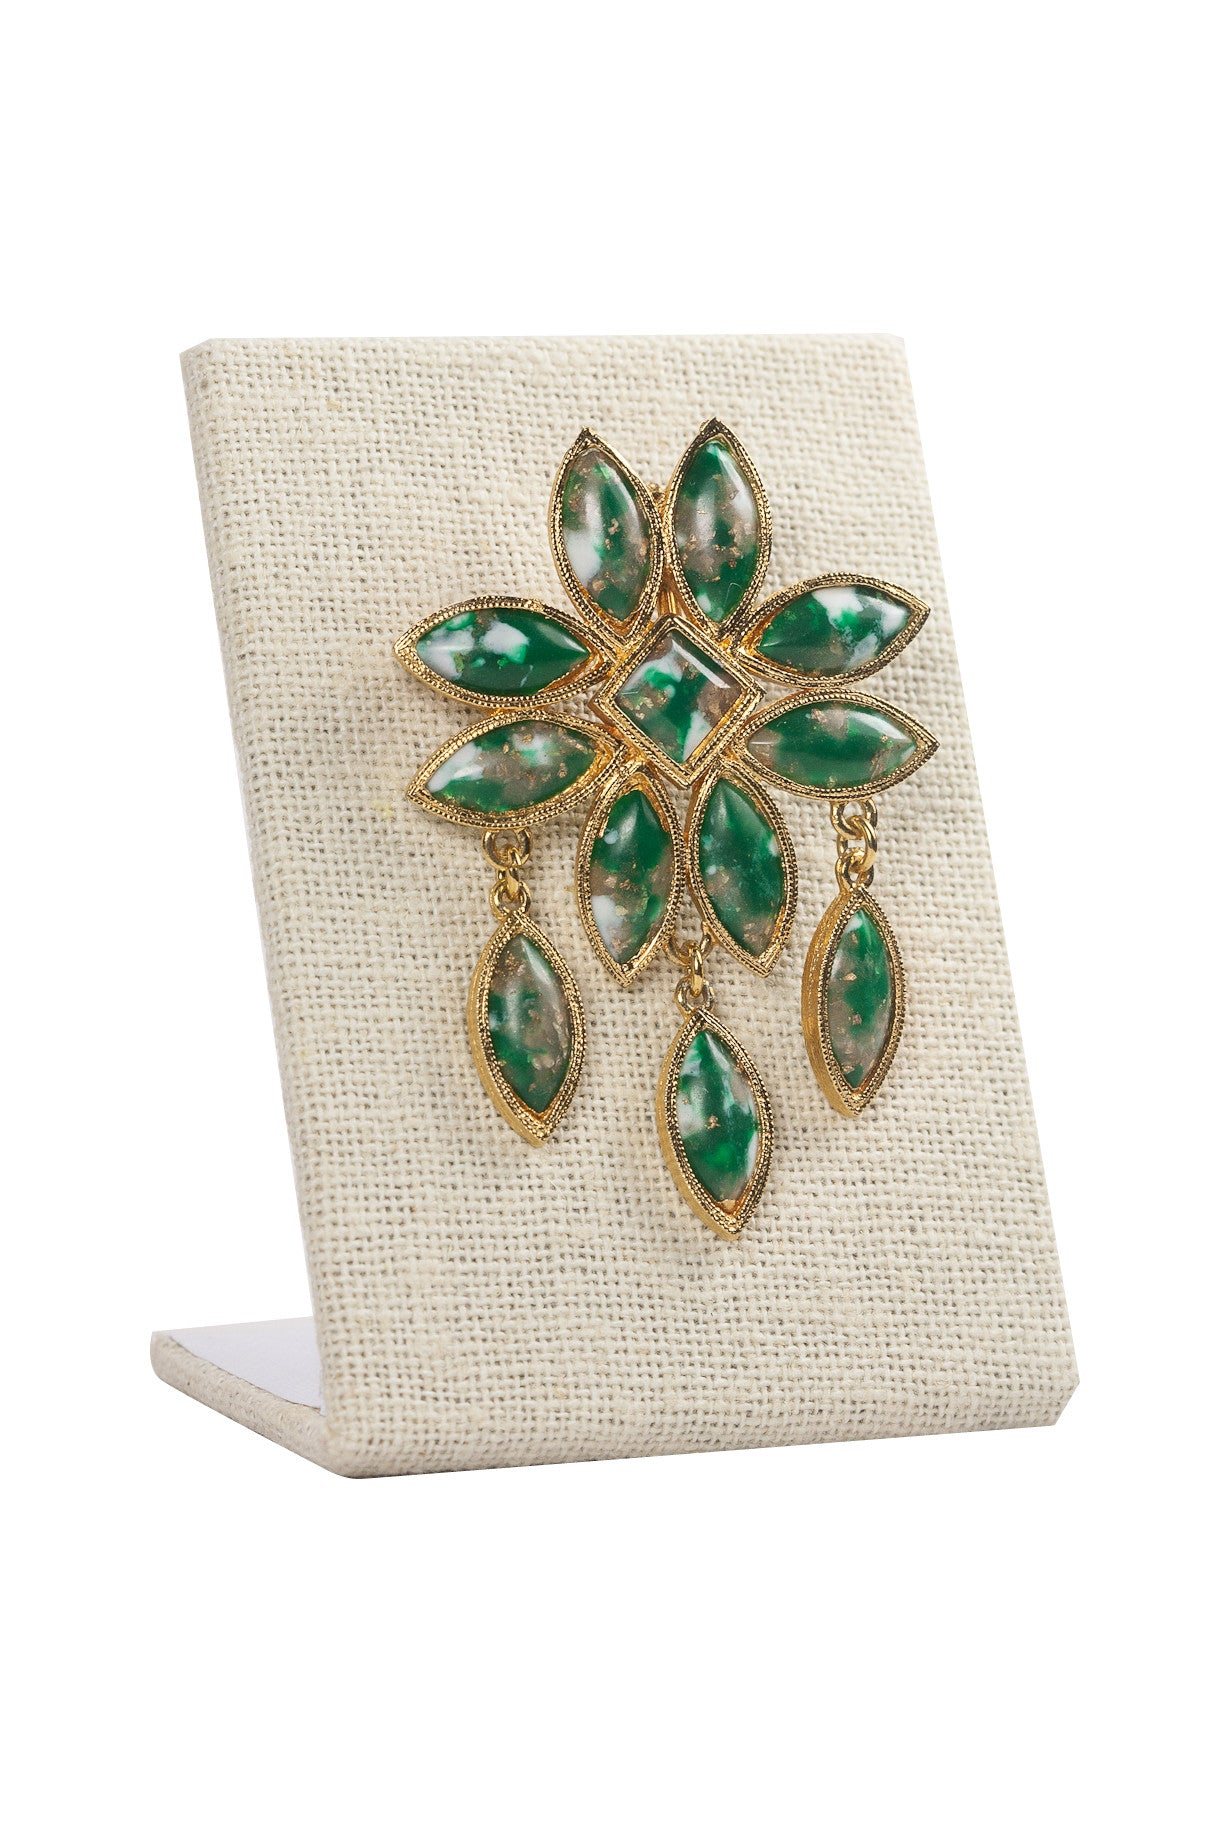 60's__Celebrity__Green Fringe Brooch